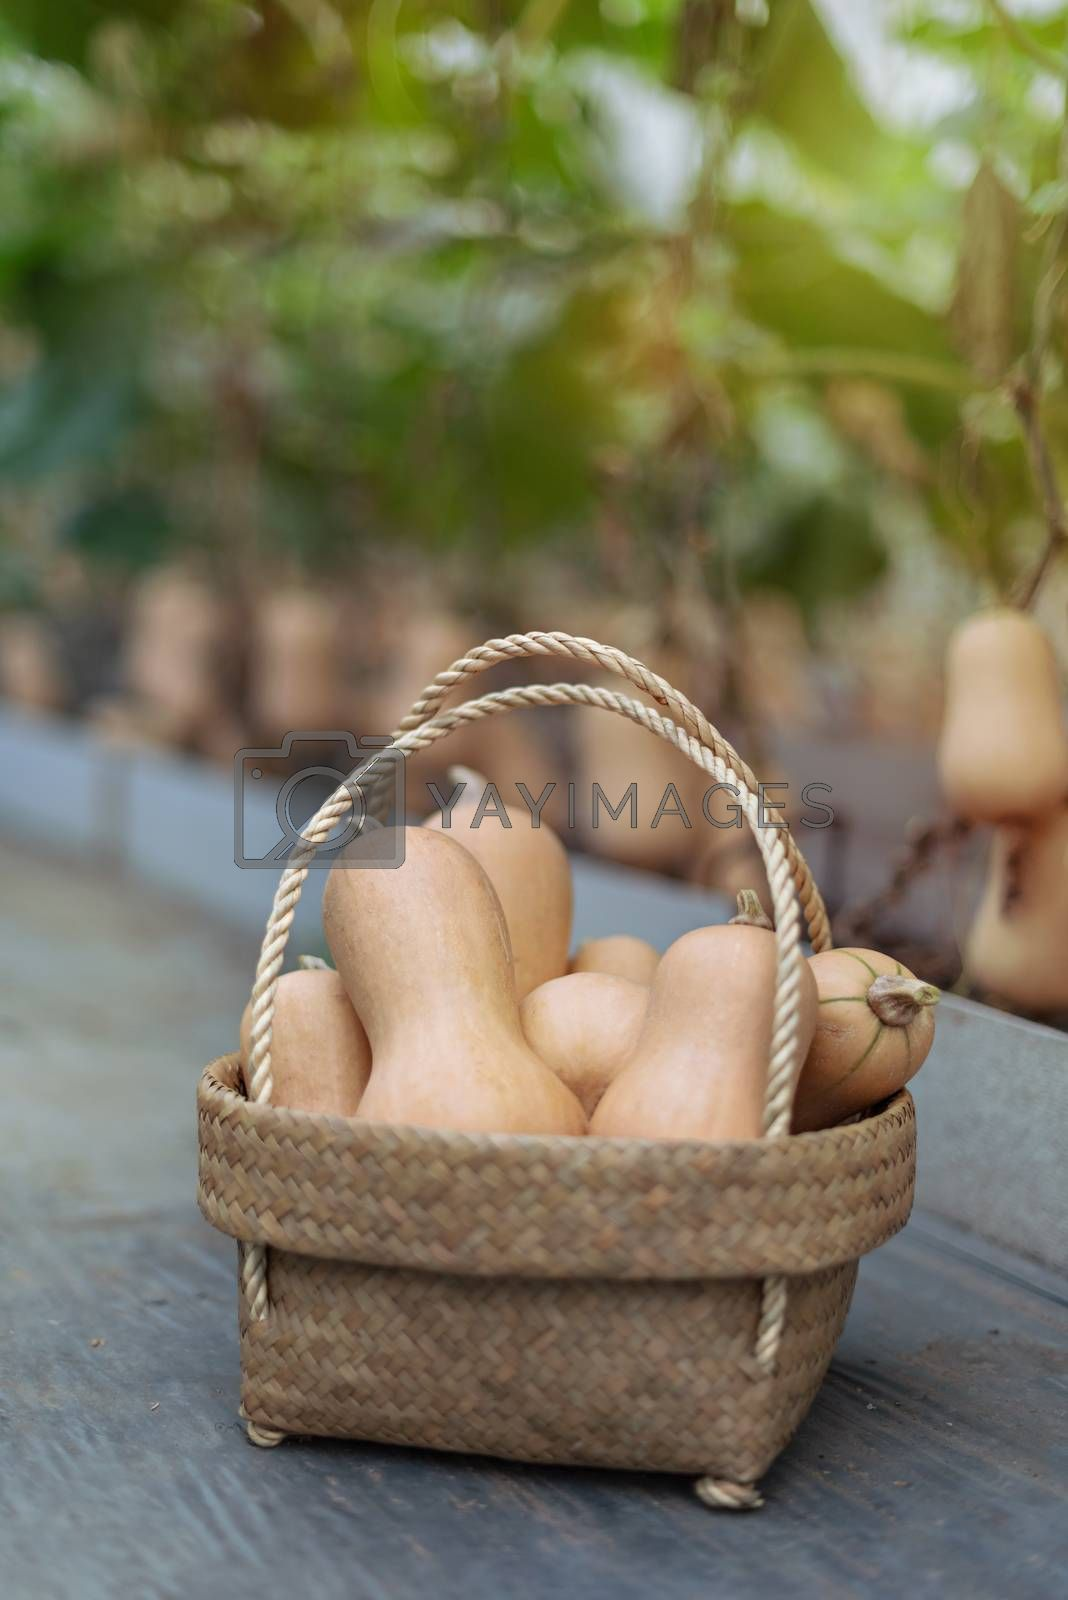 Royalty free image of butternut squash in bamboo basket by rakratchada